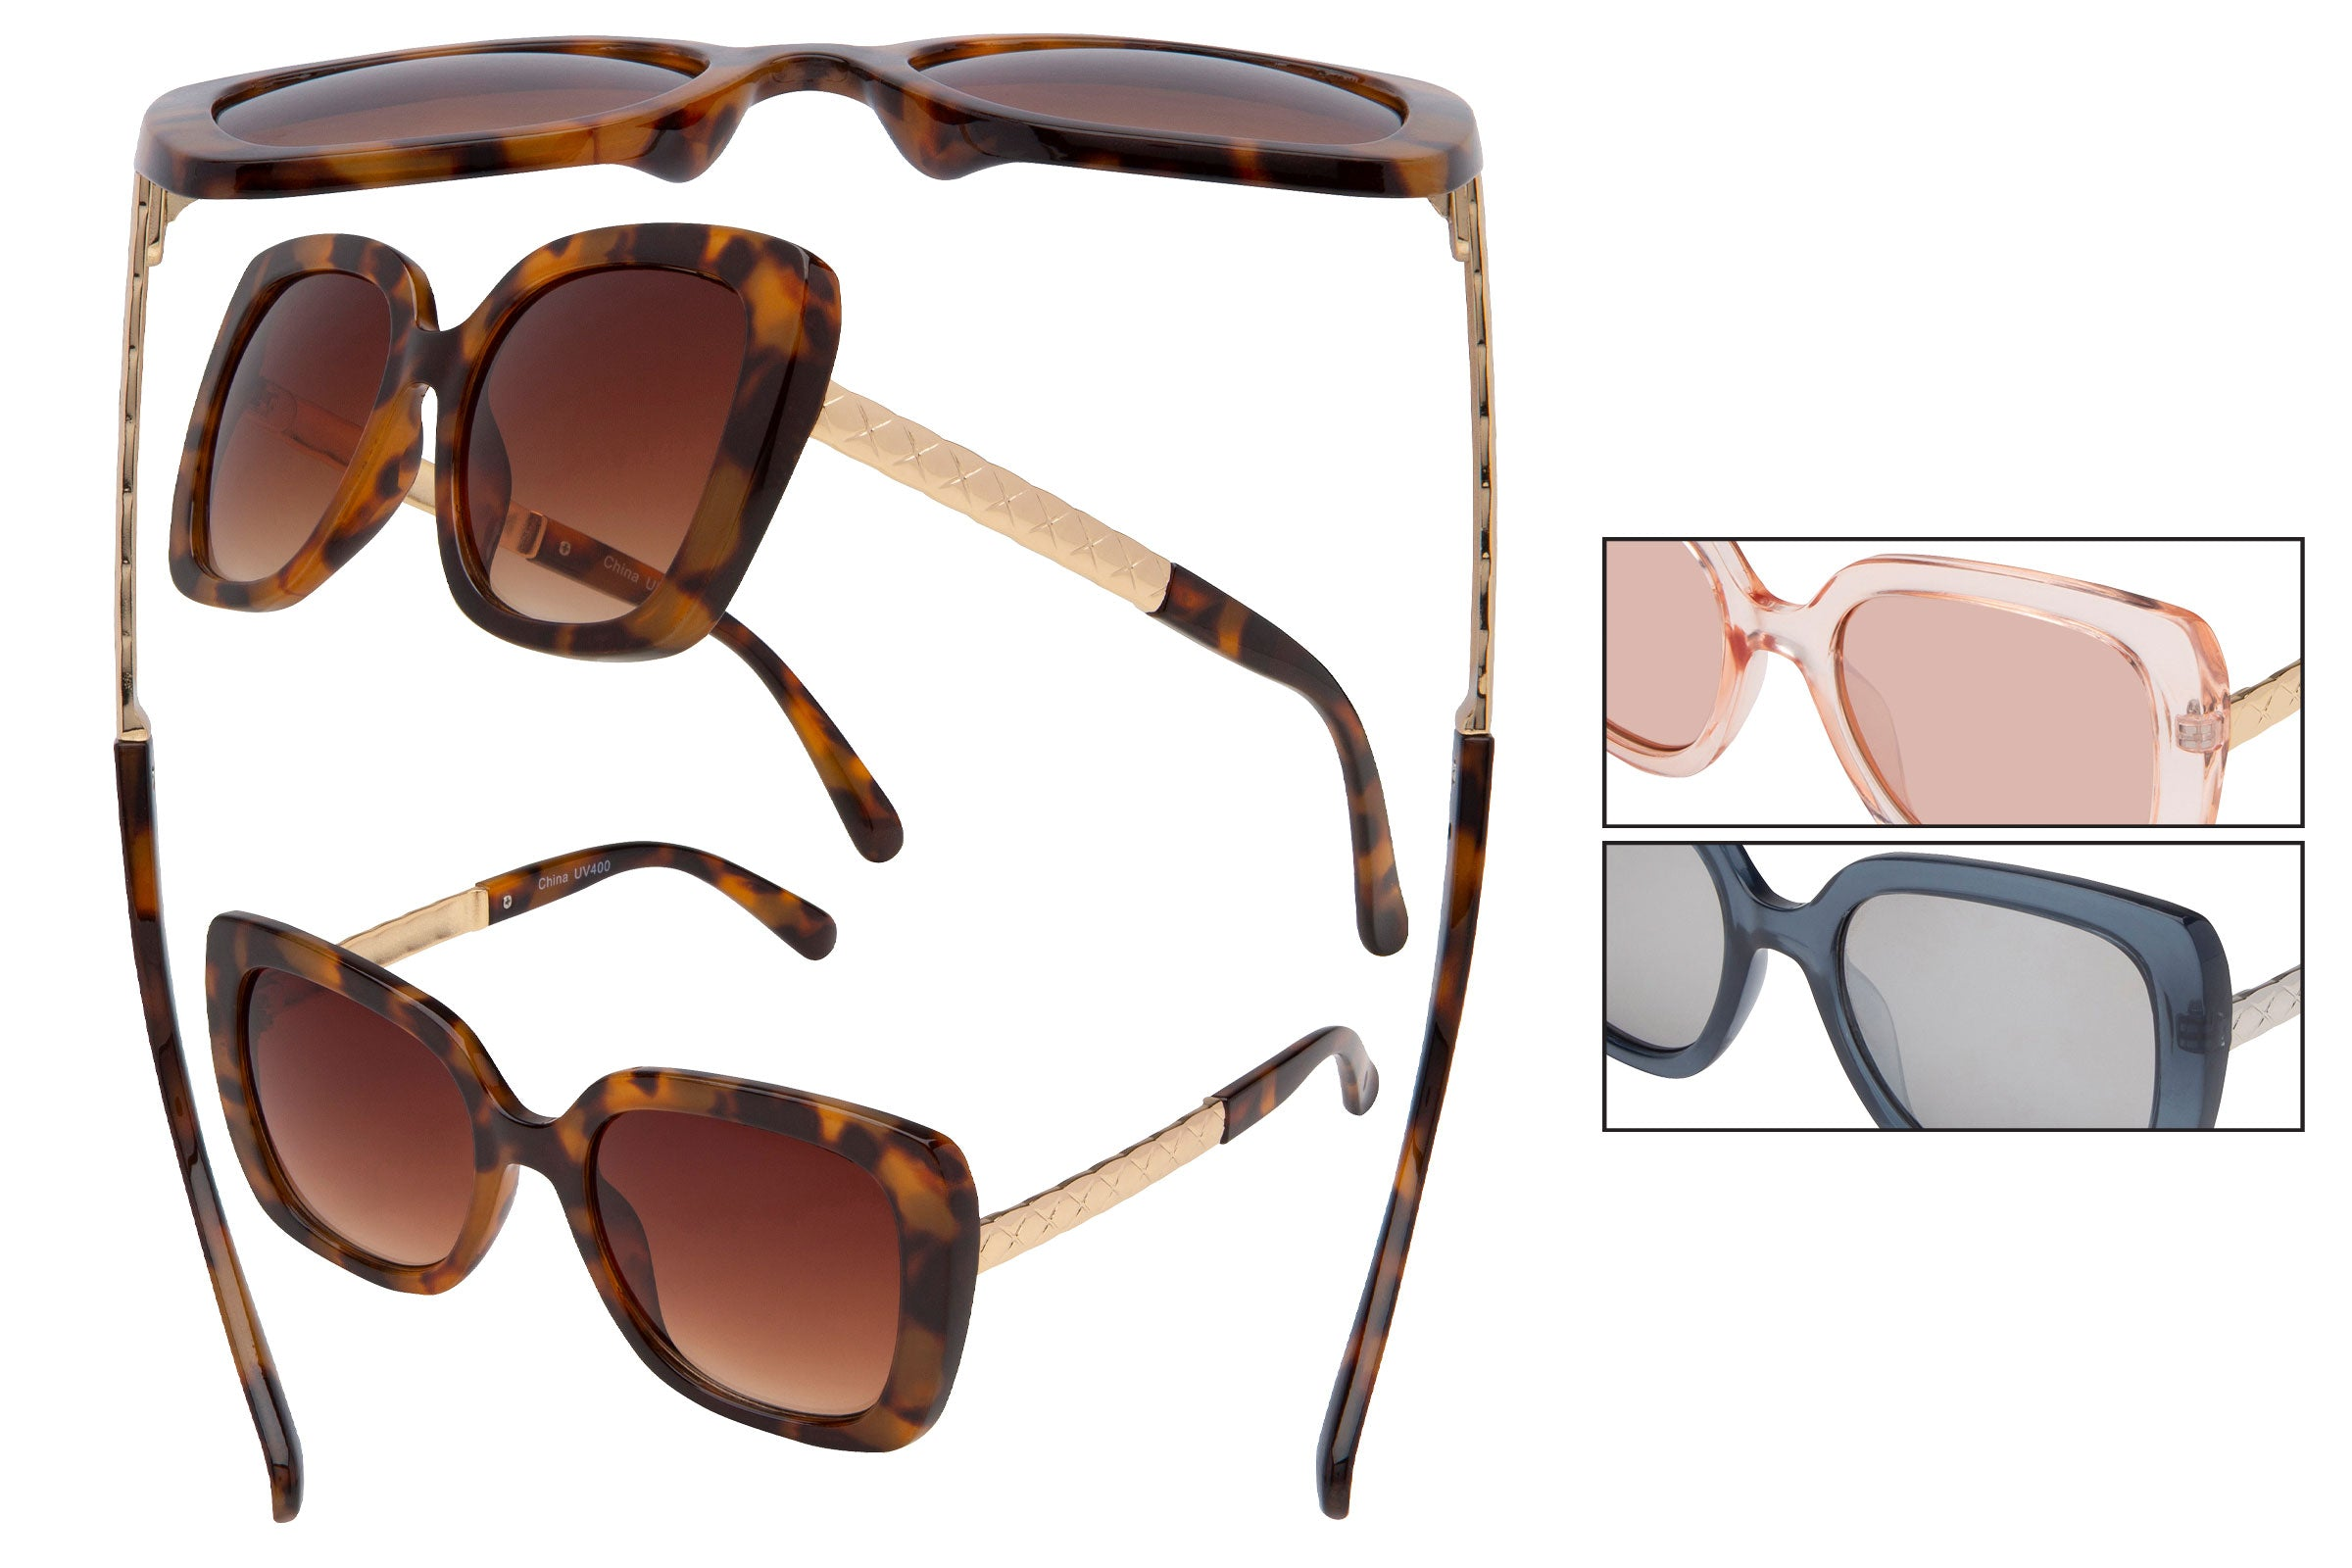 TF27 - Women's Fashion Sunglasses